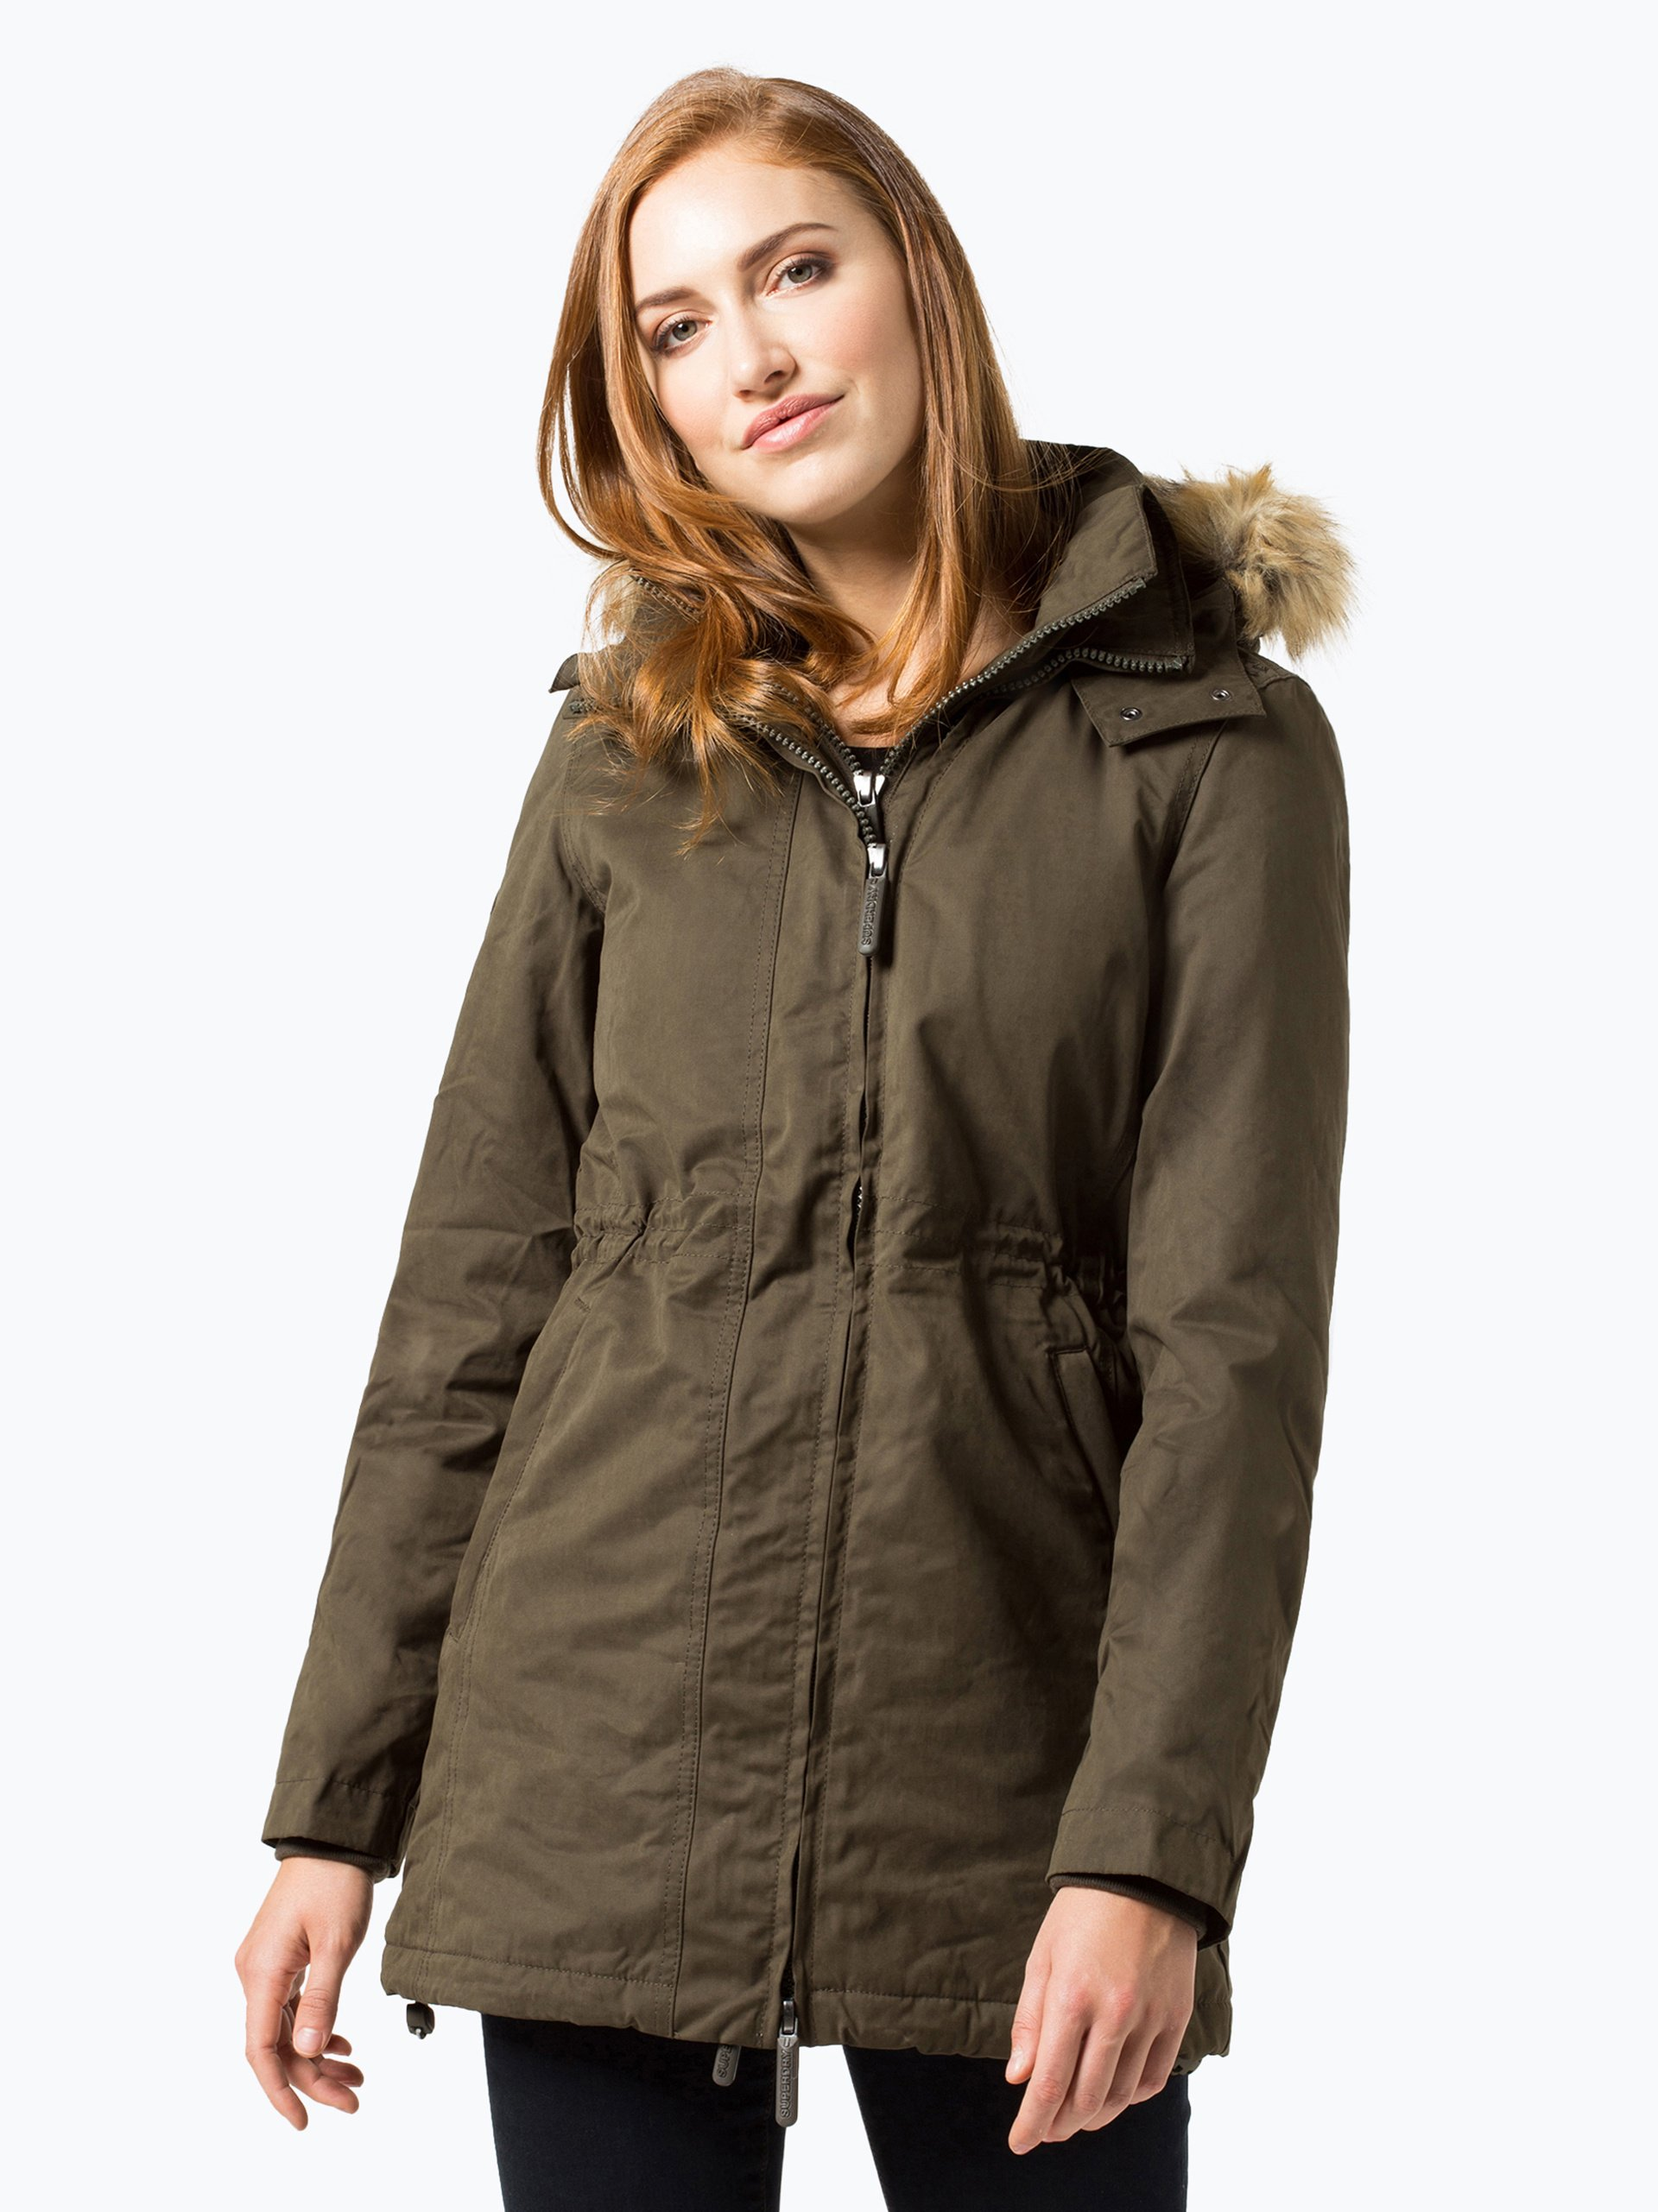 superdry damen parka oliv uni online kaufen vangraaf com. Black Bedroom Furniture Sets. Home Design Ideas